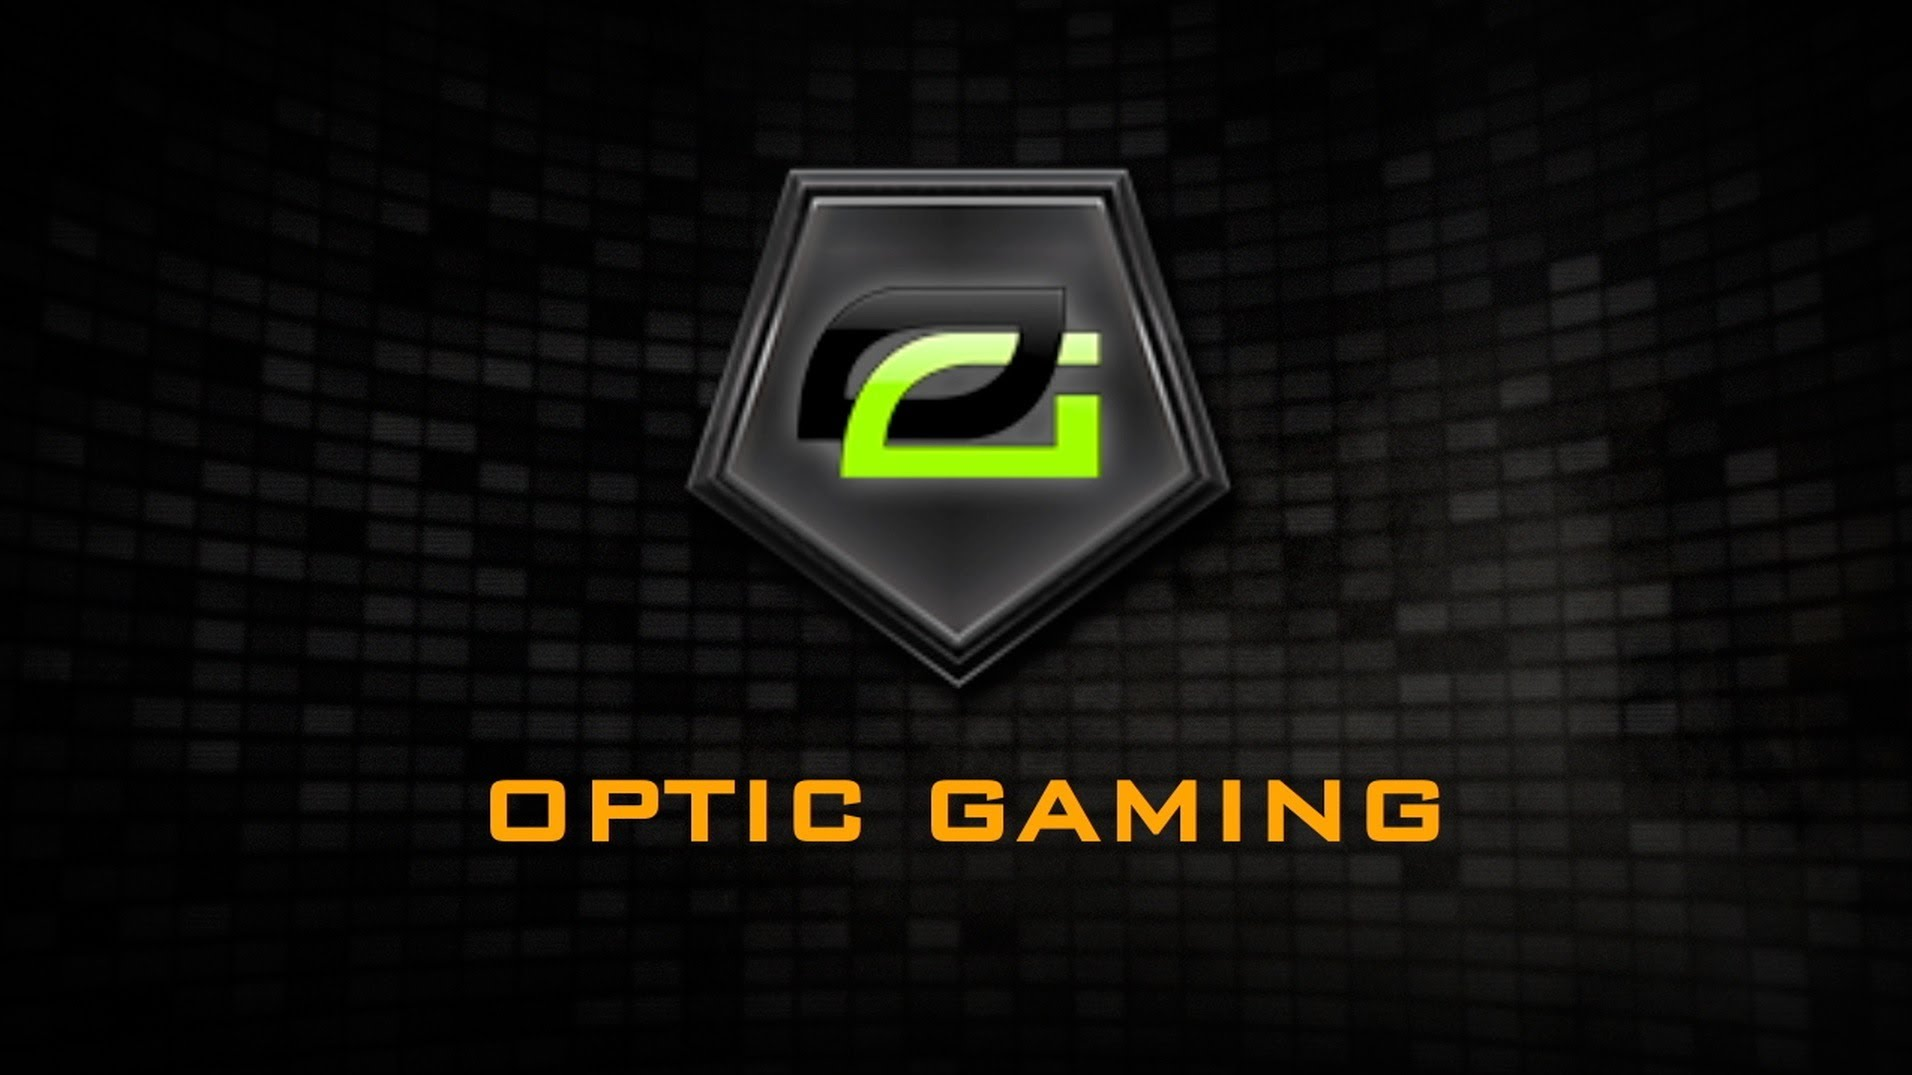 Optic Gaming 2013 Images Pictures   Becuo 1912x1075